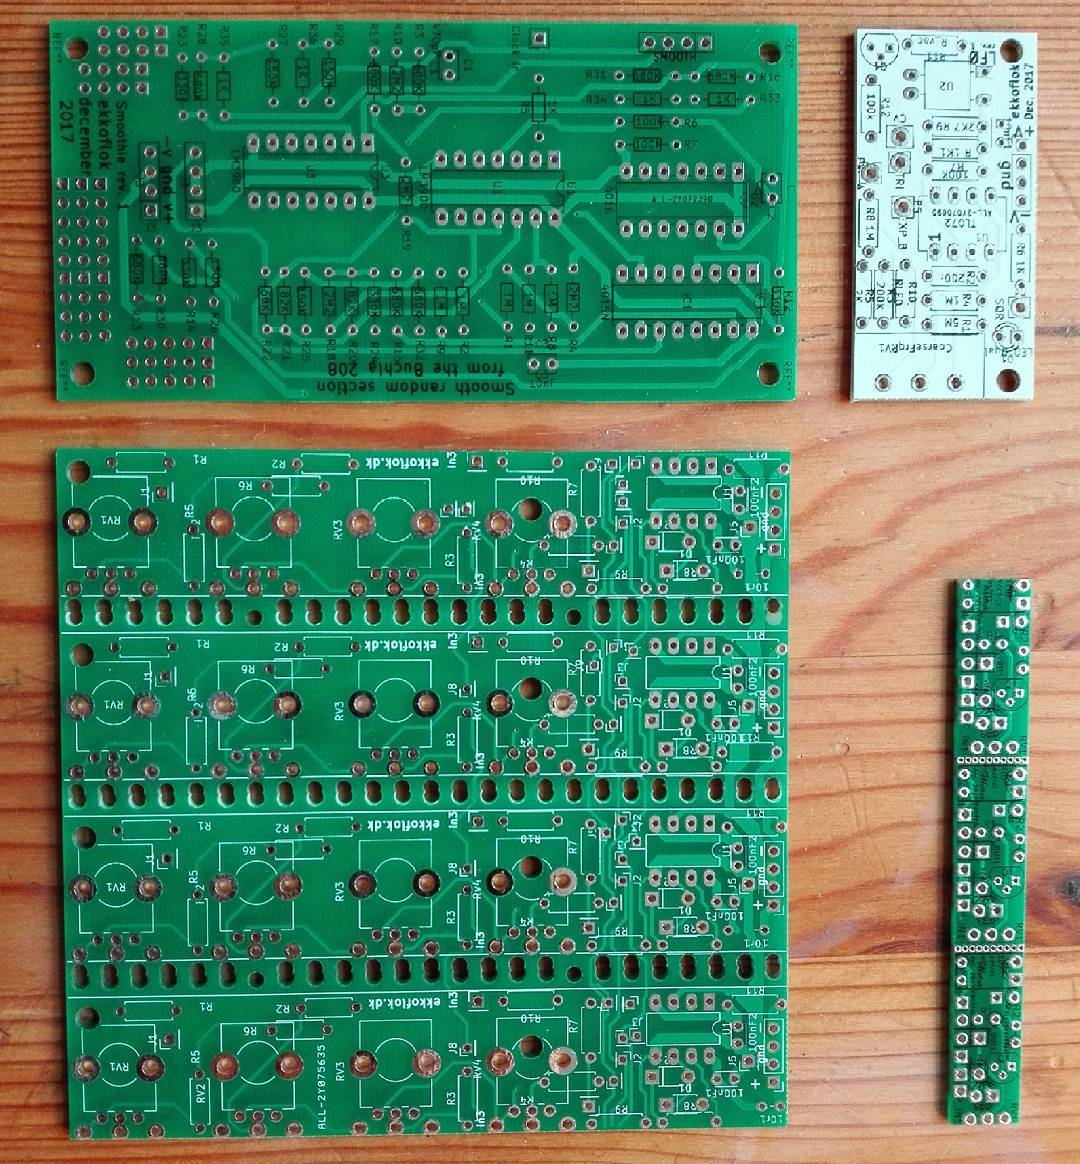 jpg/instruments/various_printed_circuit_boards.jpg